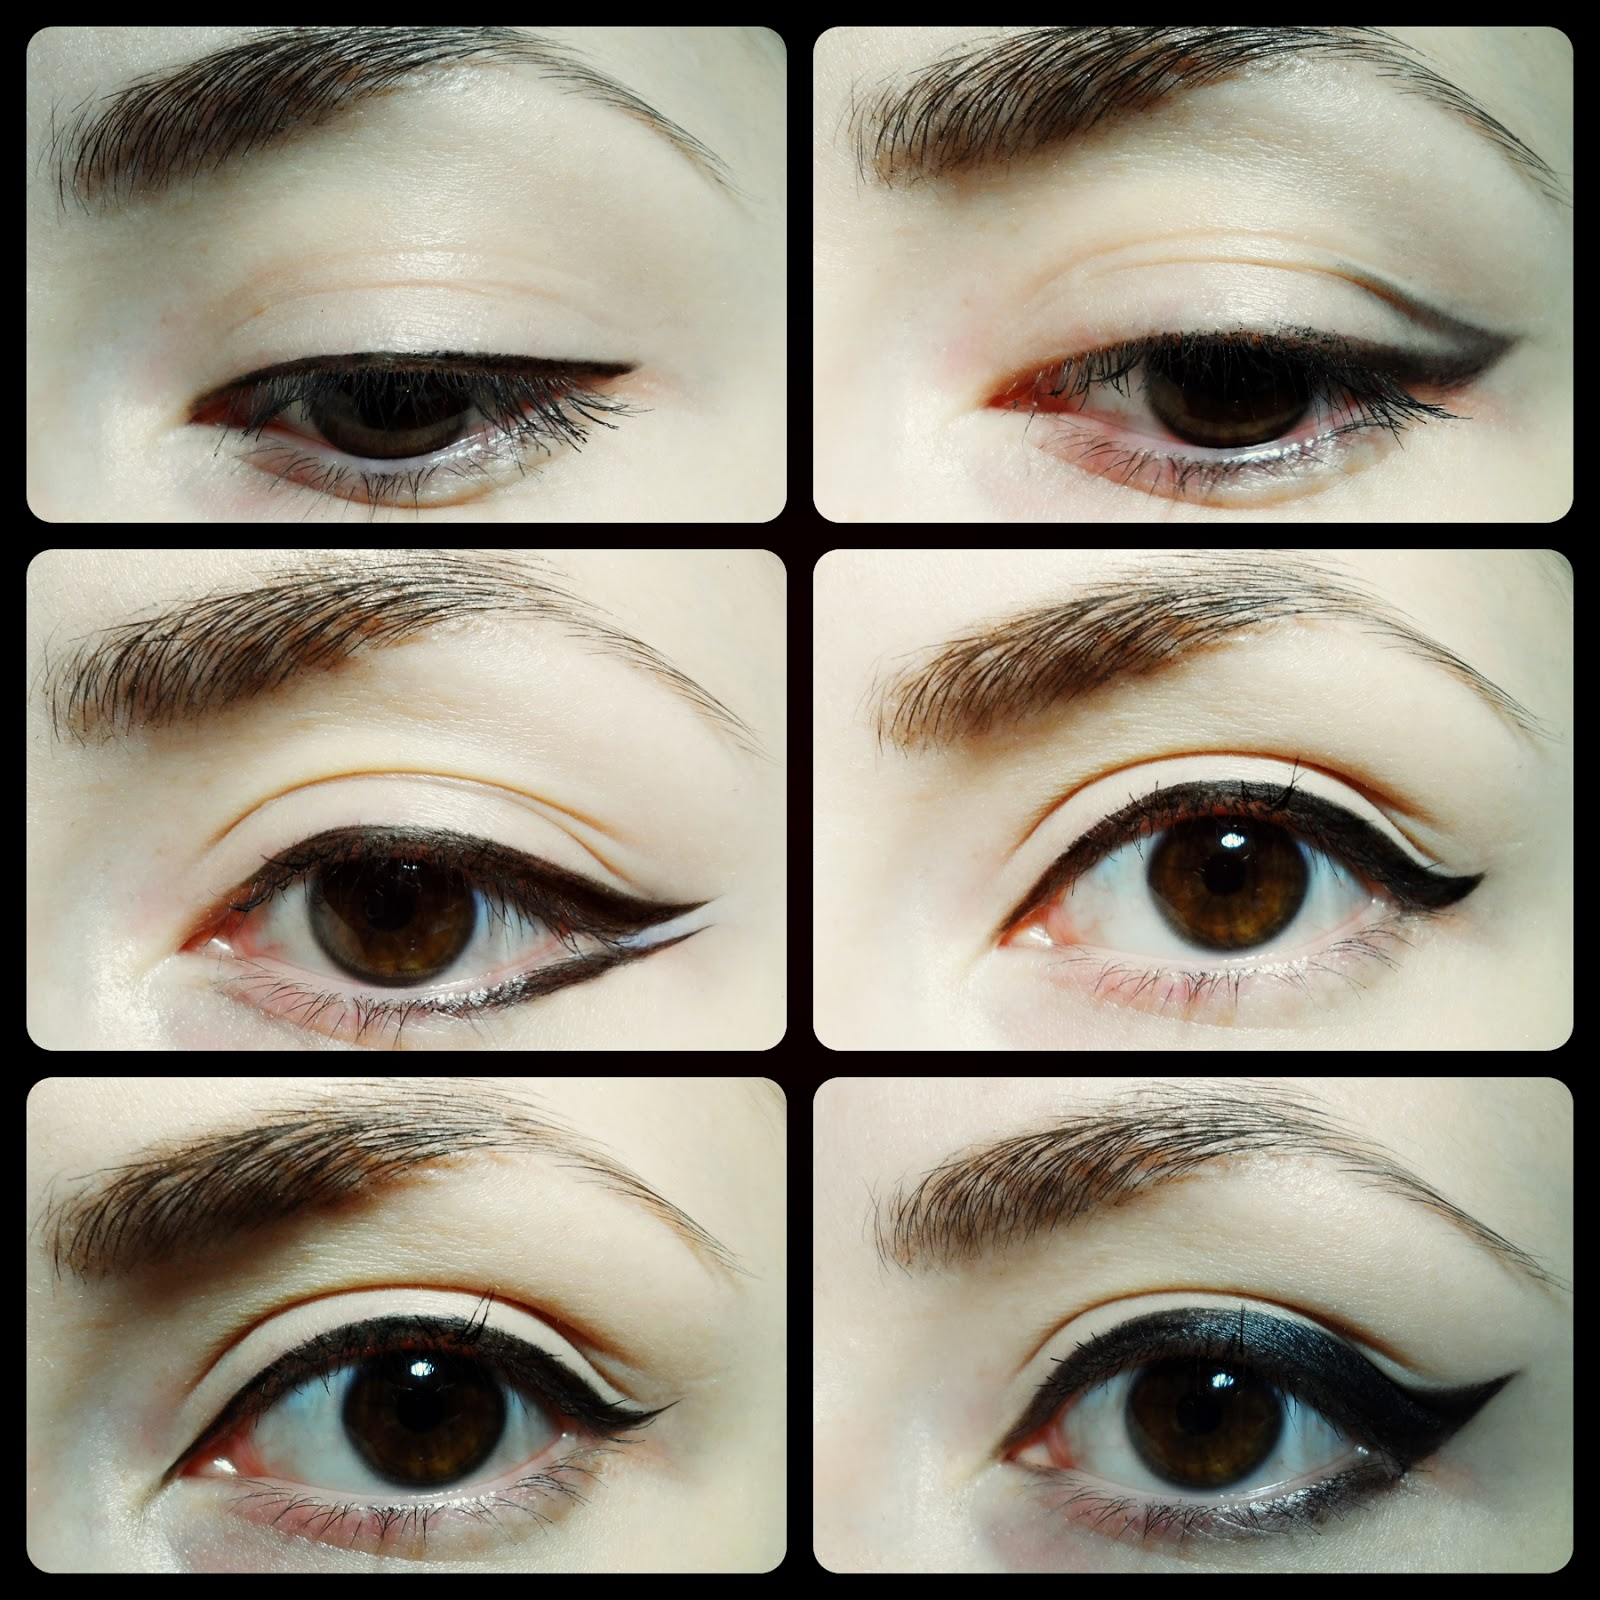 liquid black eyeliner styles alternatives variations